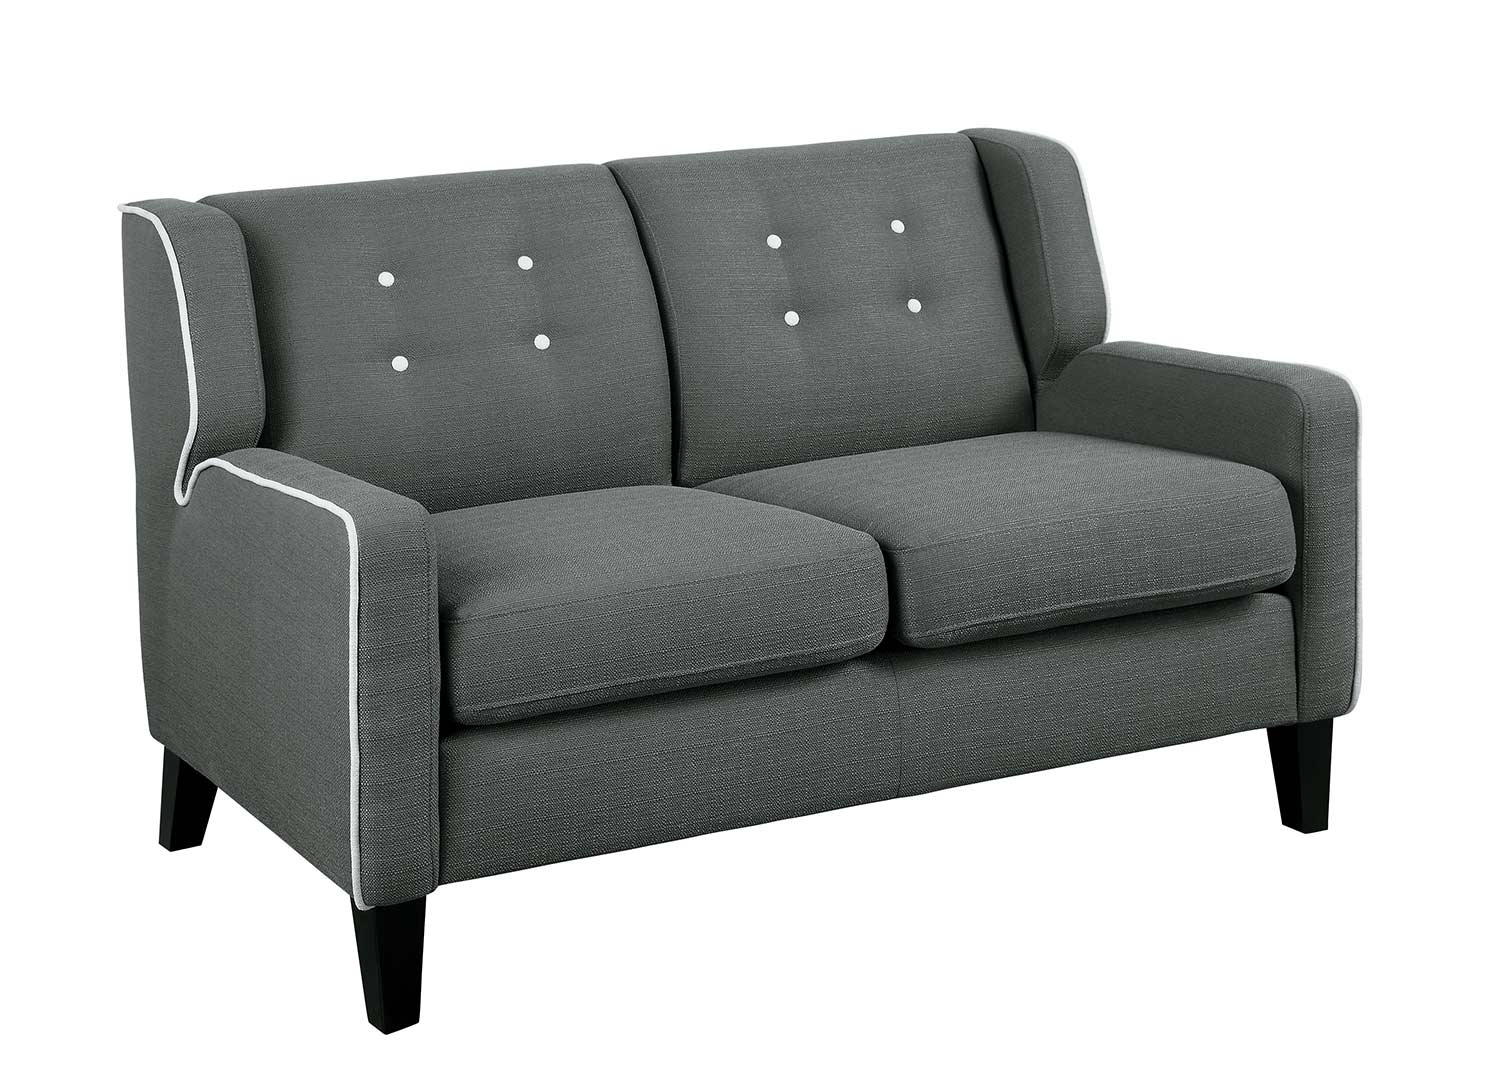 Homelegance Roweena Love Seat - Dark Gray